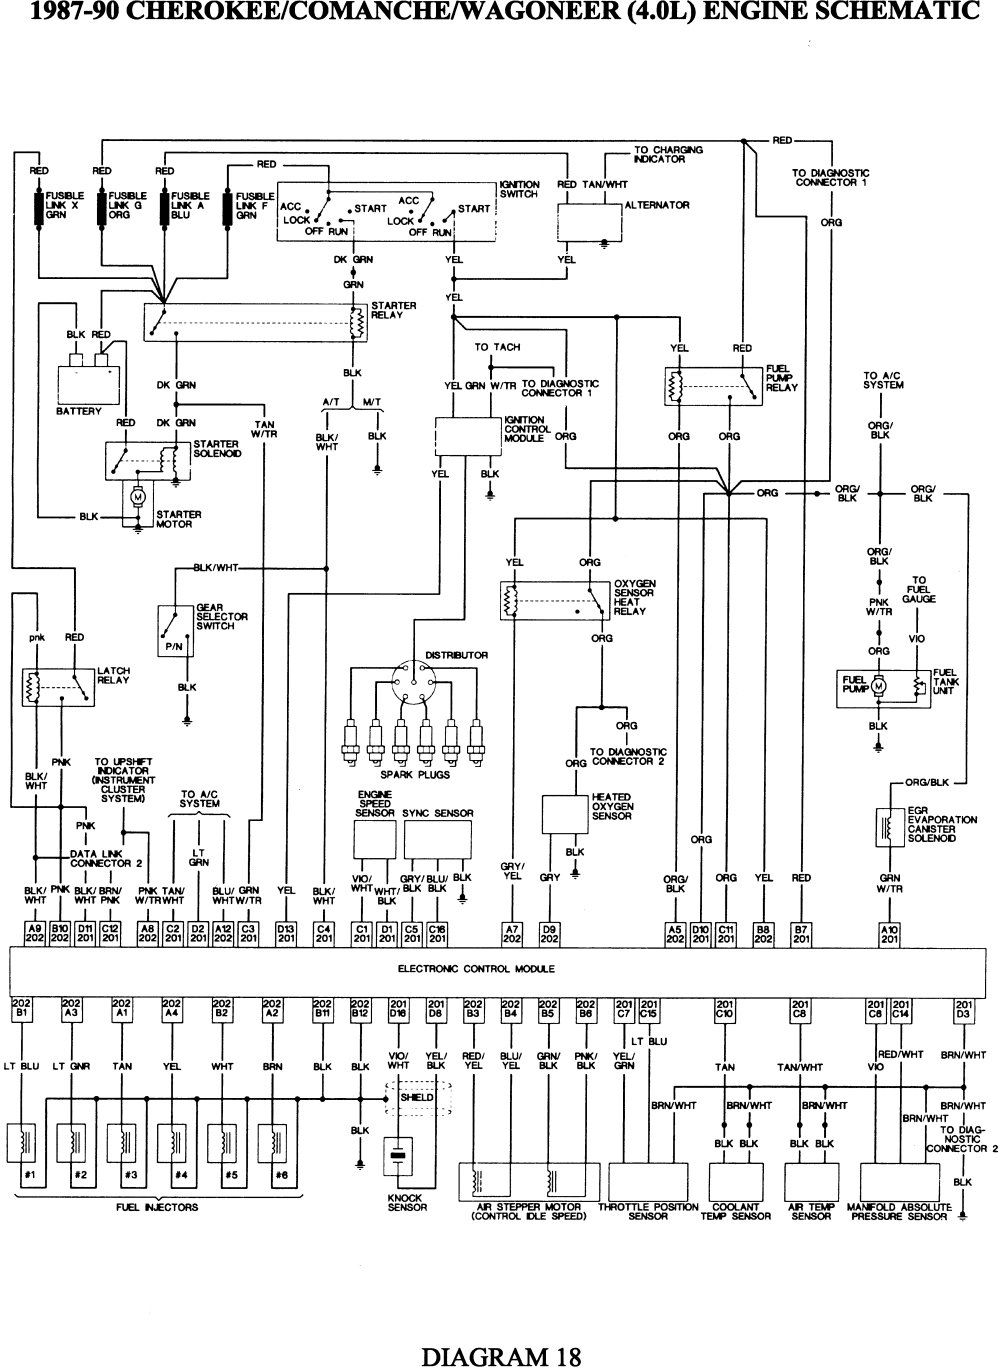 medium resolution of wire diagram 86 jeep mj wiring diagram schematic 1991 jeep comanche engine diagram wiring diagram schematic